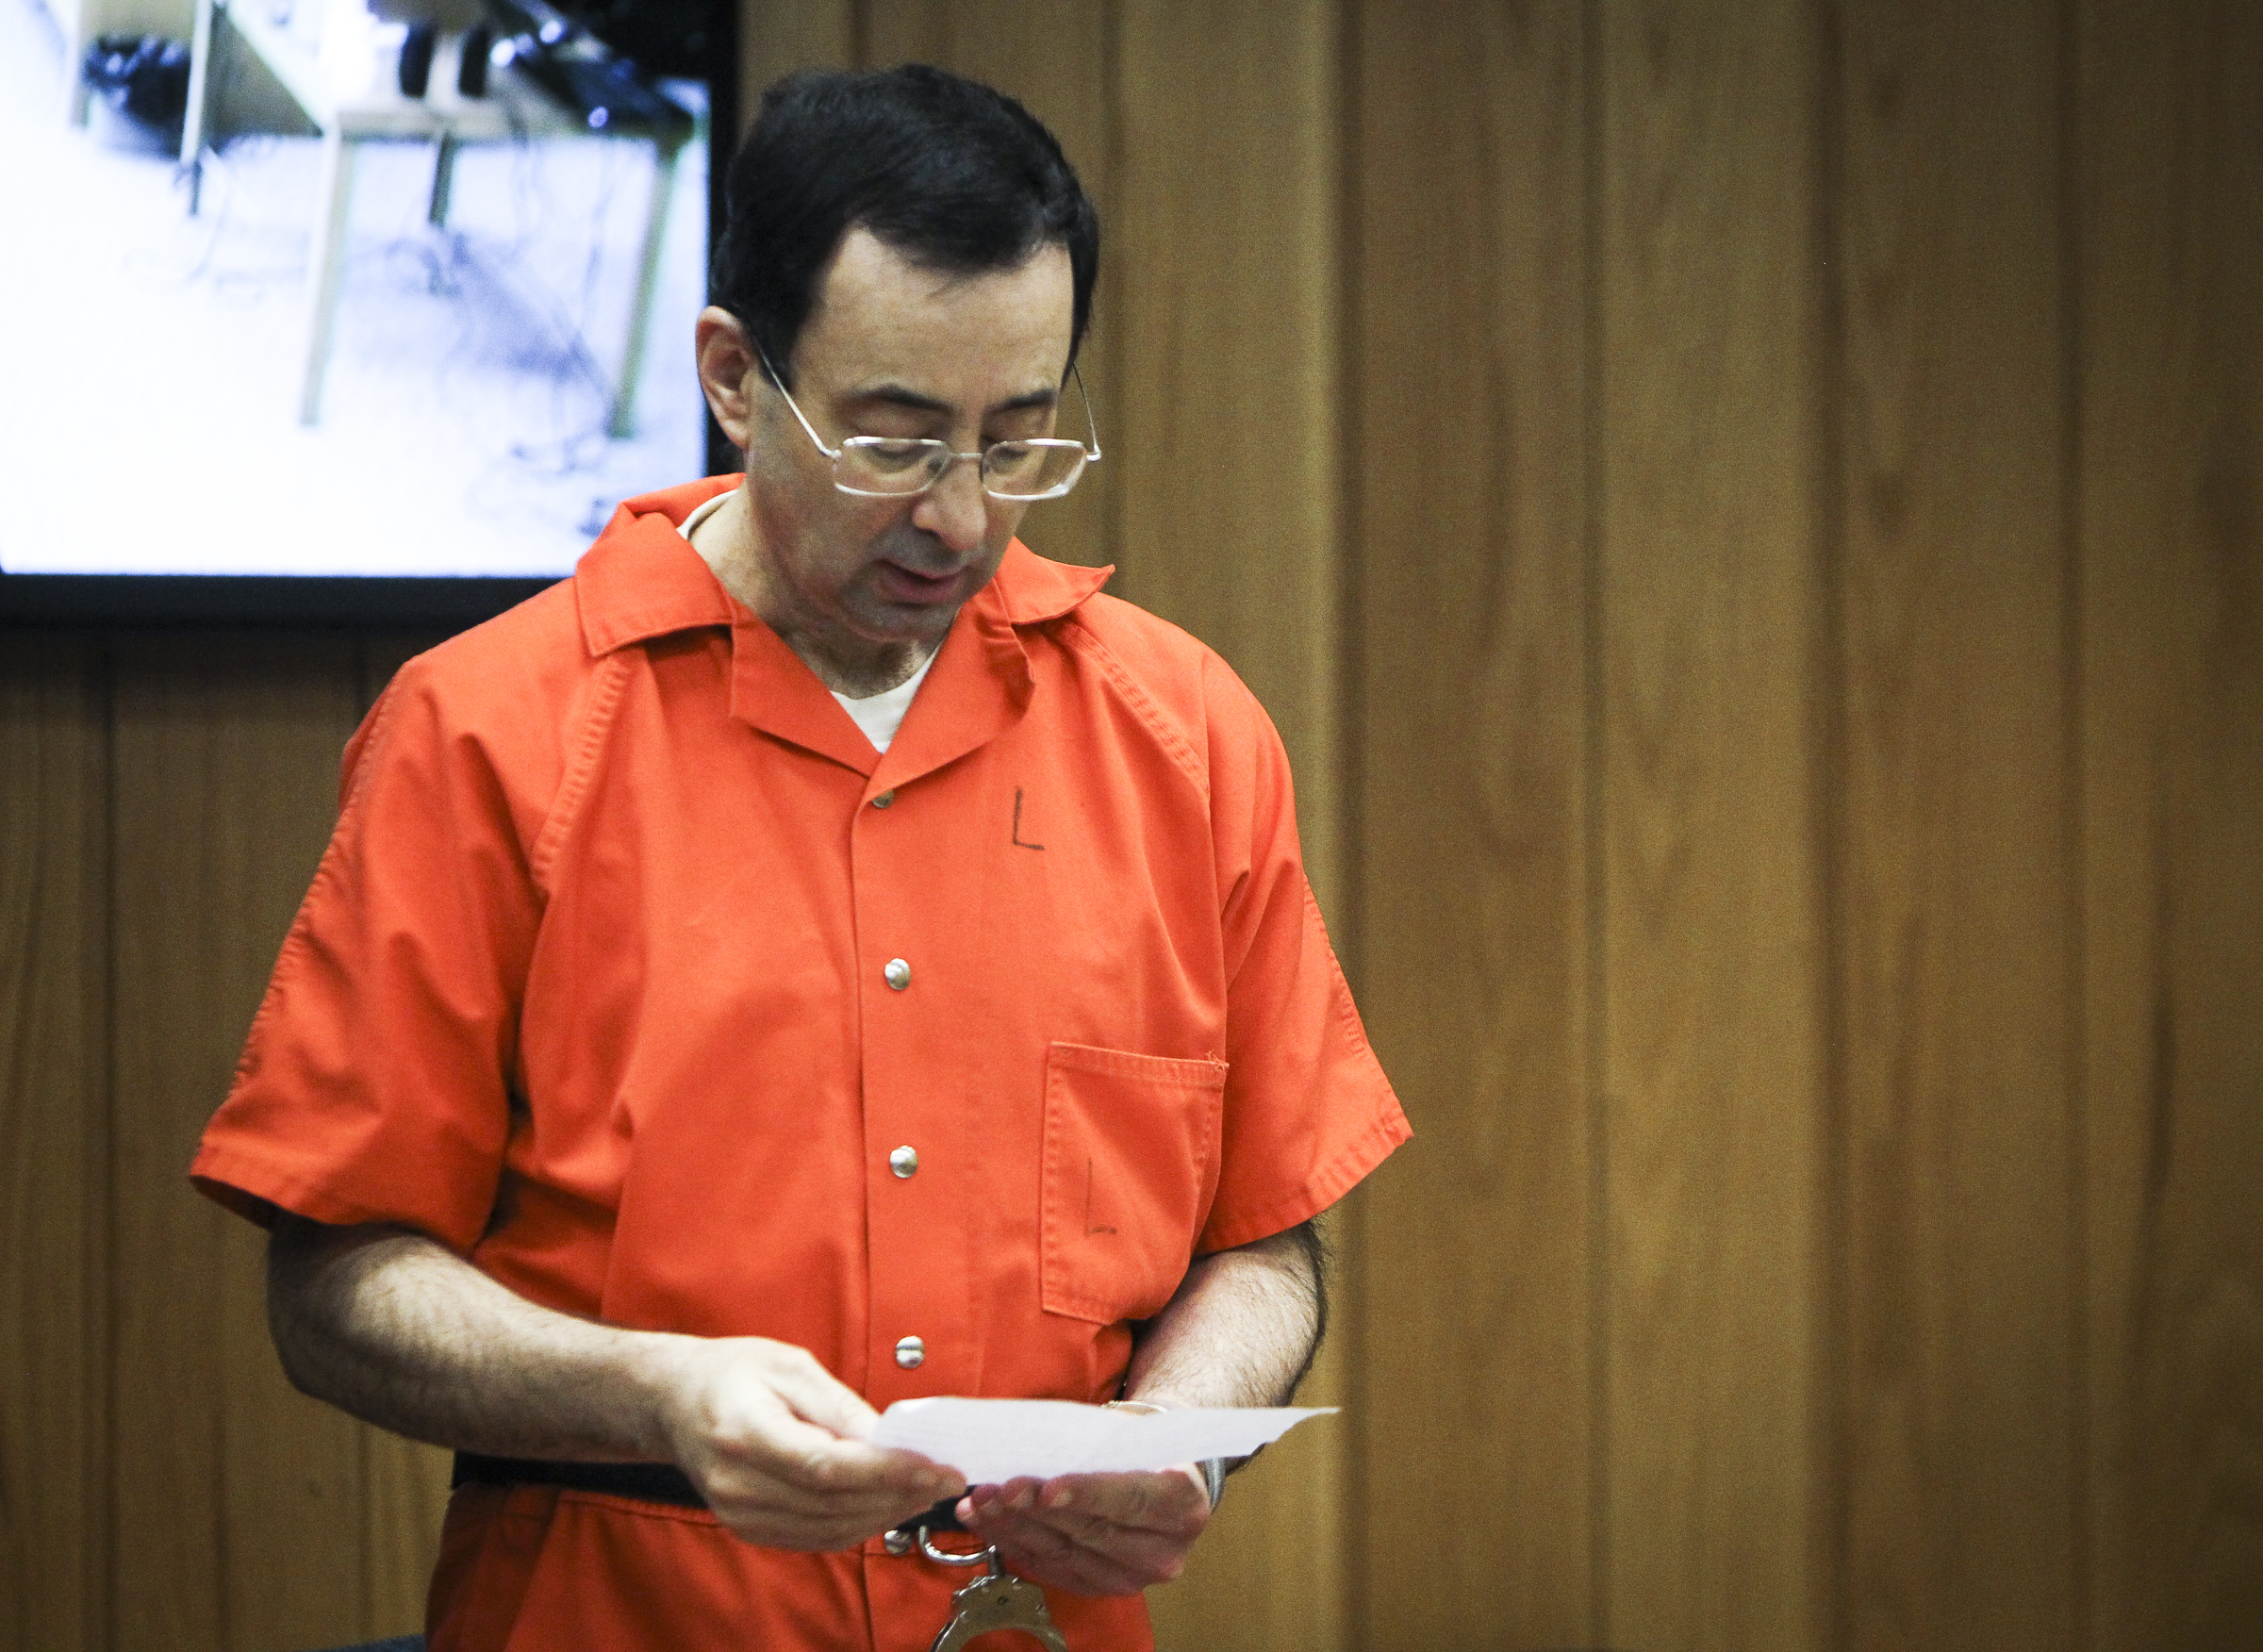 Larry Nassar reads a statement Monday, Feb. 5, 2018, during the third and final day of sentencing in Eaton County Court in Charlotte, Mich., where he will be sentenced on three counts of sexual assault. Nassar already has been sentenced to 40 to 175 years in prison in another county and is starting his time behind bars with a 60-year federal term for child pornography crimes. (Matthew Dae Smith/Lansing State Journal via AP)